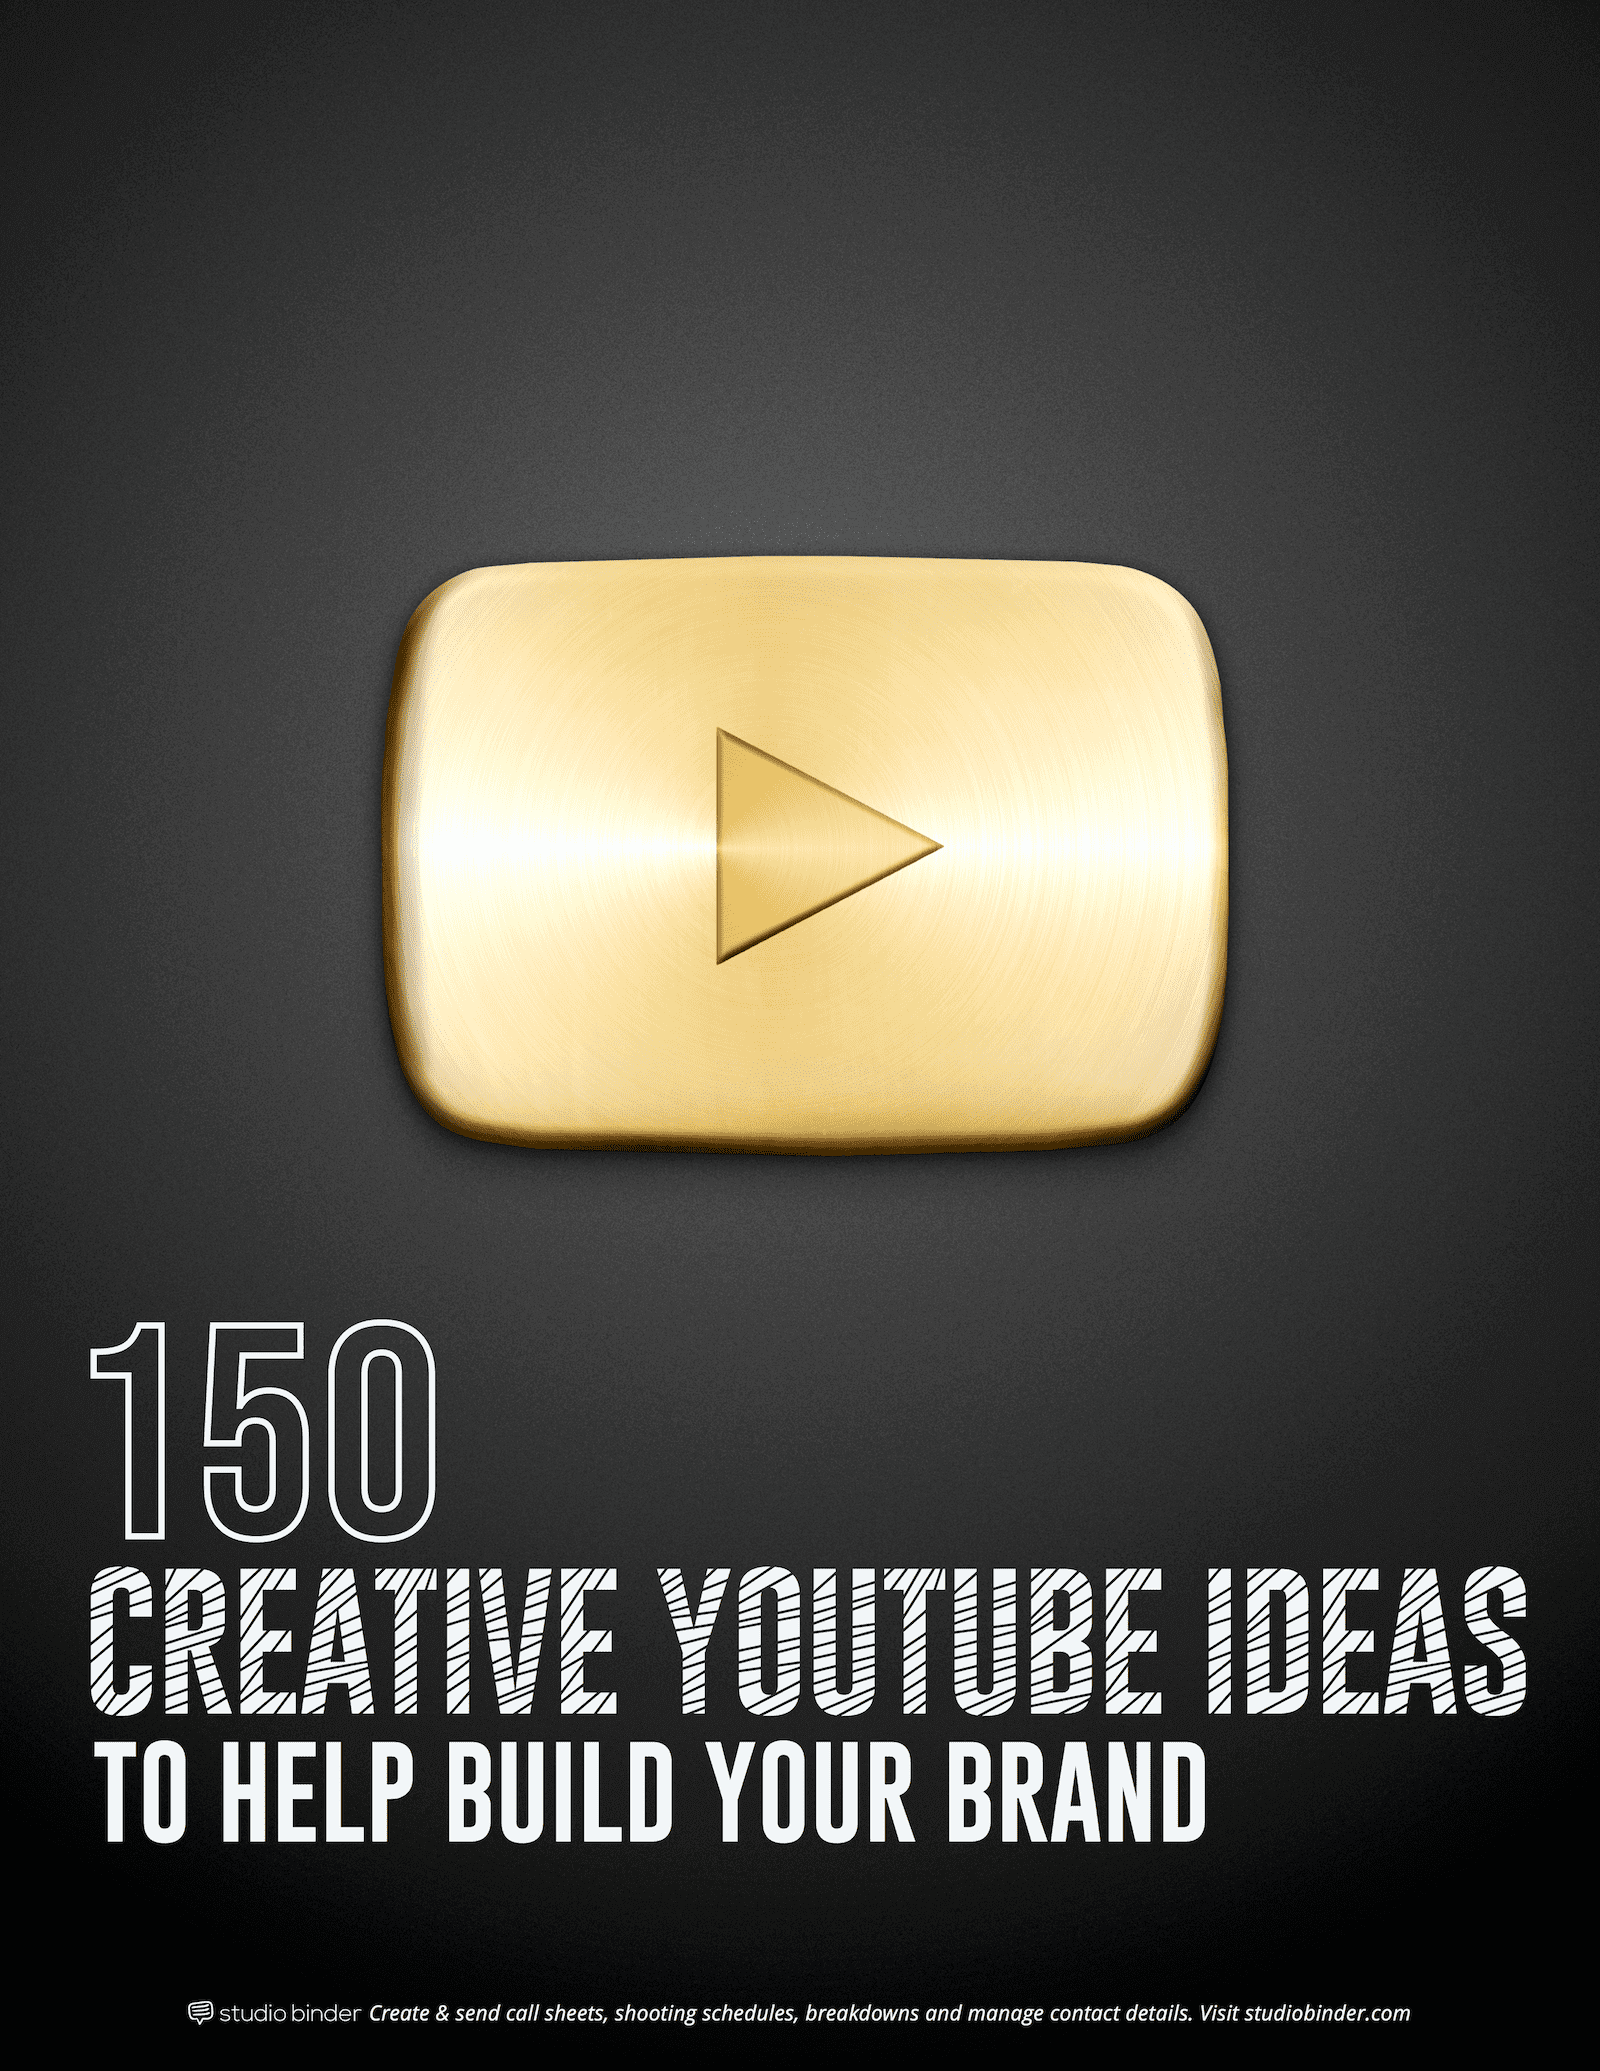 161 Creative YouTube Video Ideas to Try [FREE Channel Ideas